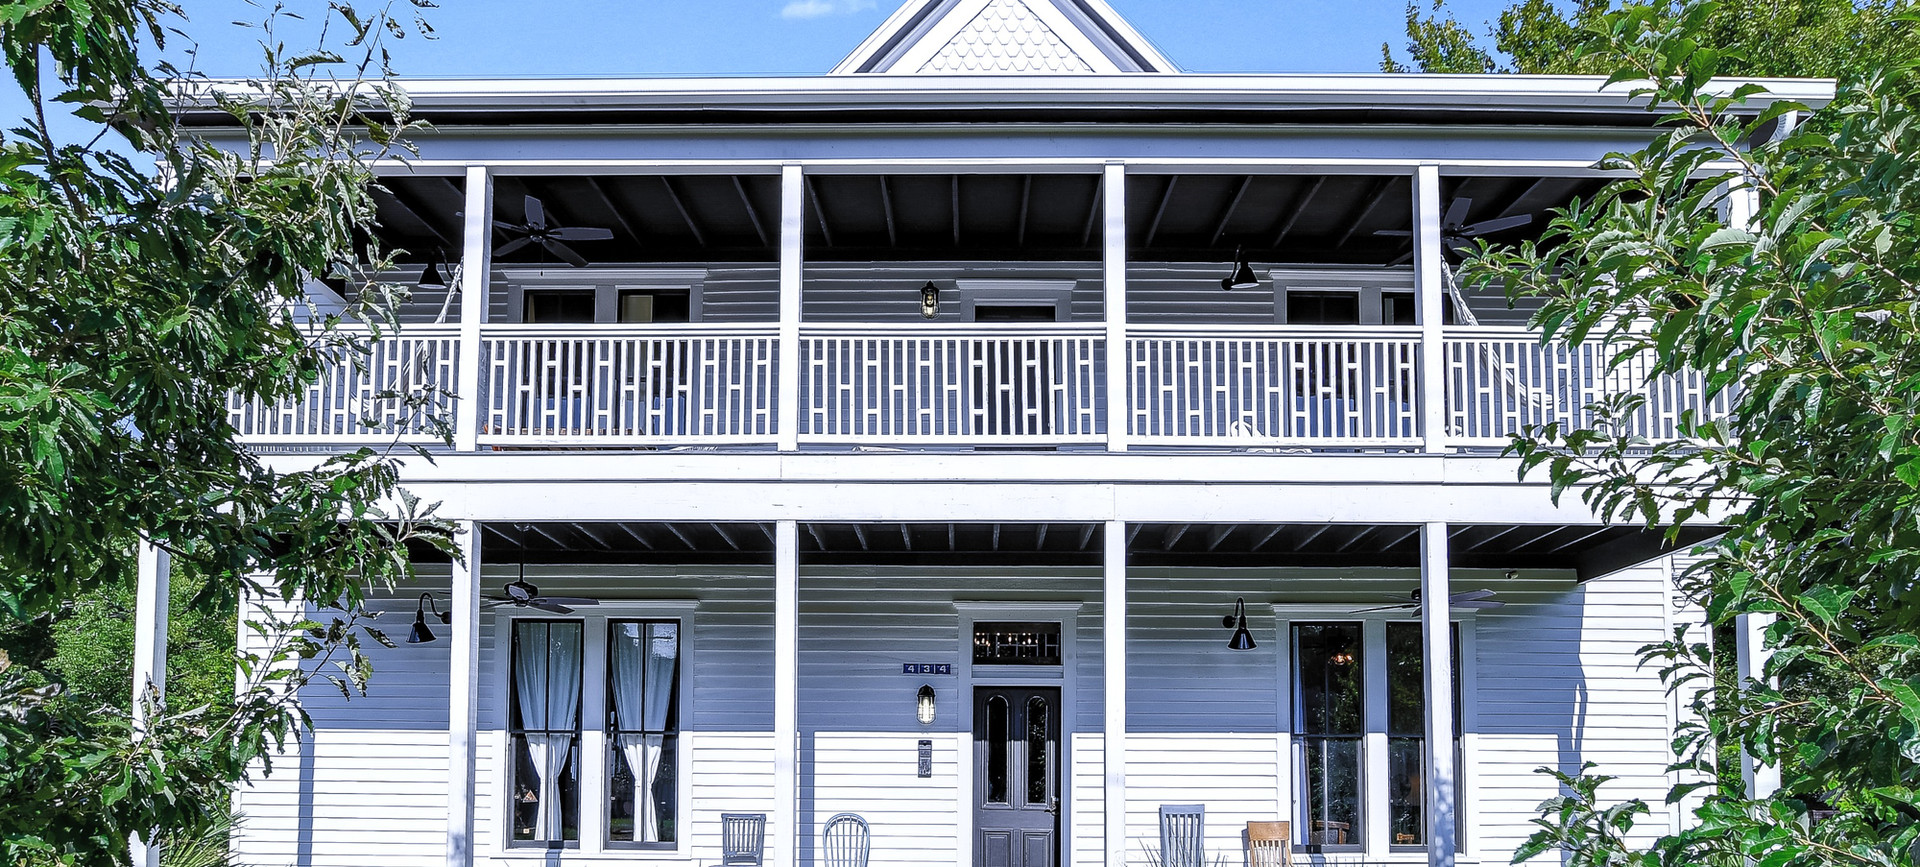 Ellison House is a Luxury Vacation & Event Venue in Lockhart, Texas set a few blocks north of the historic square.